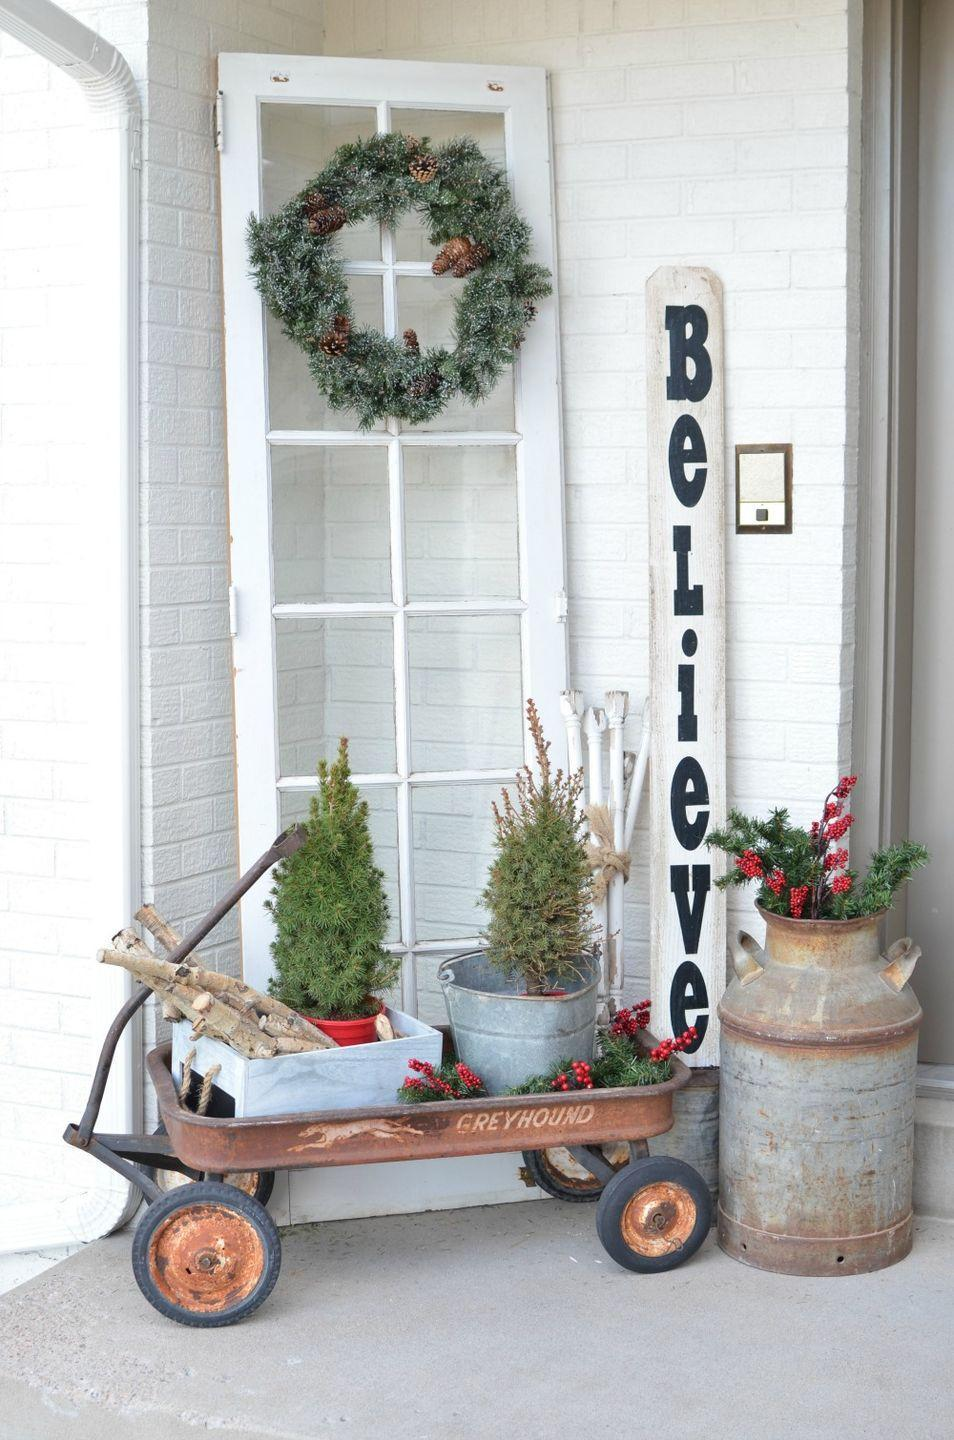 "<p>This porch by <a href=""https://sarahjoyblog.com/christmas-on-the-front-porch/"" rel=""nofollow noopener"" target=""_blank"" data-ylk=""slk:Sarah Joy Blog"" class=""link rapid-noclick-resp"">Sarah Joy Blog</a> doesn't have a lot of Christmas decor, but it still brings the holiday cheer. Sarah Joy keeps the vintage wagon on hand year-round and decorates around it, according to the season. </p>"